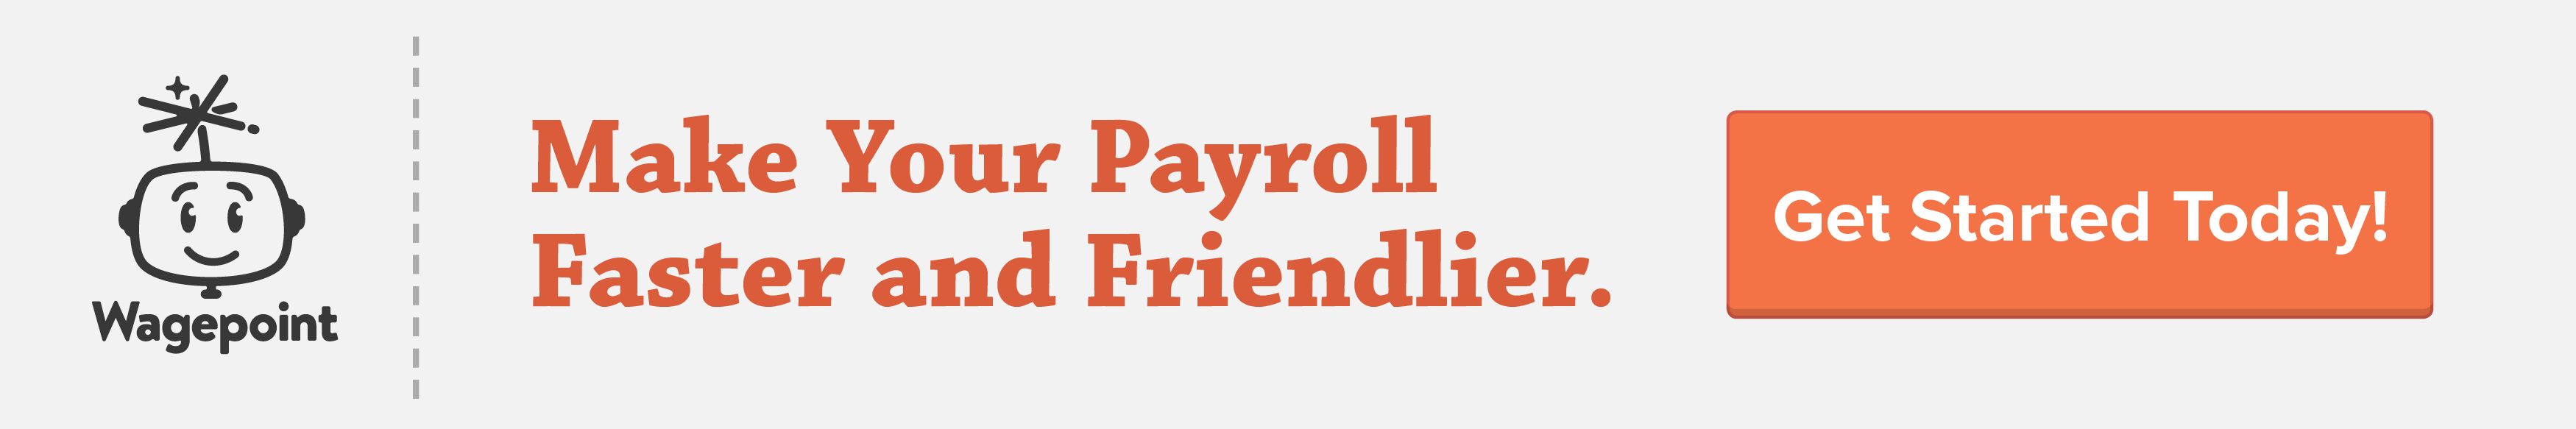 Wagepoint payroll software get started banner